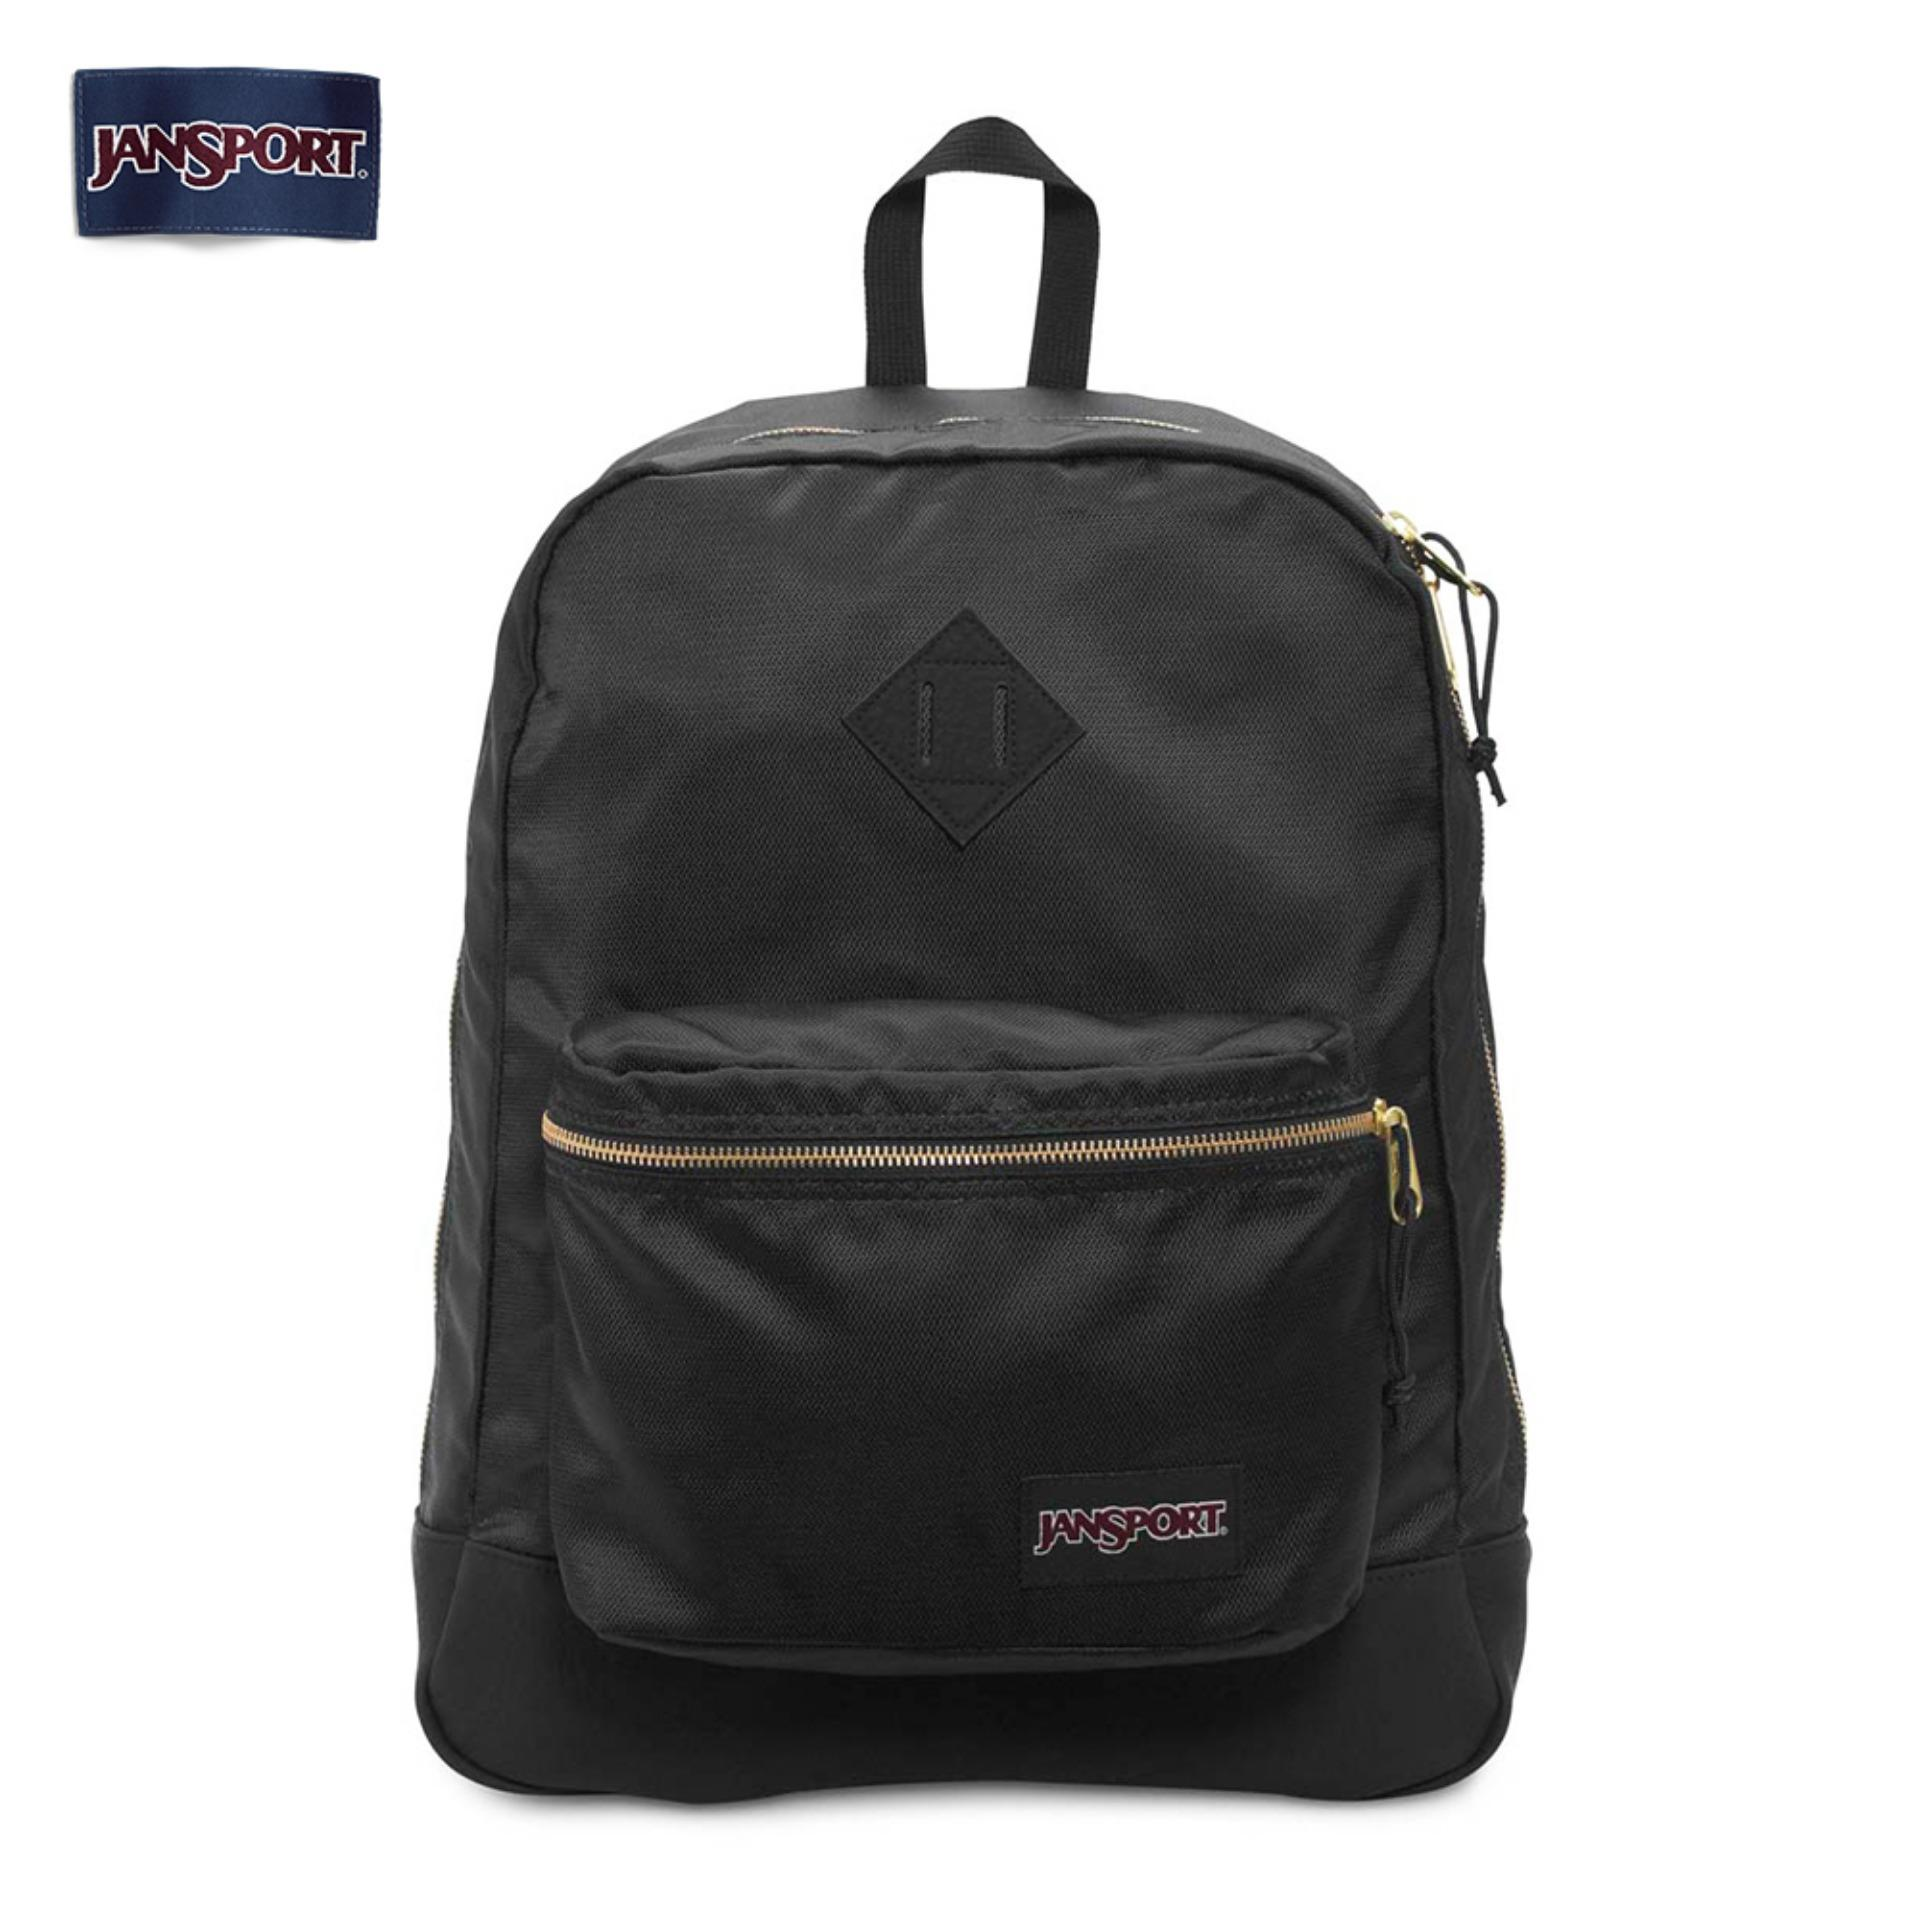 1d6c58714b6 Philippines. JanSport Womens Super FX Backpack Premium Nylon Backpacks